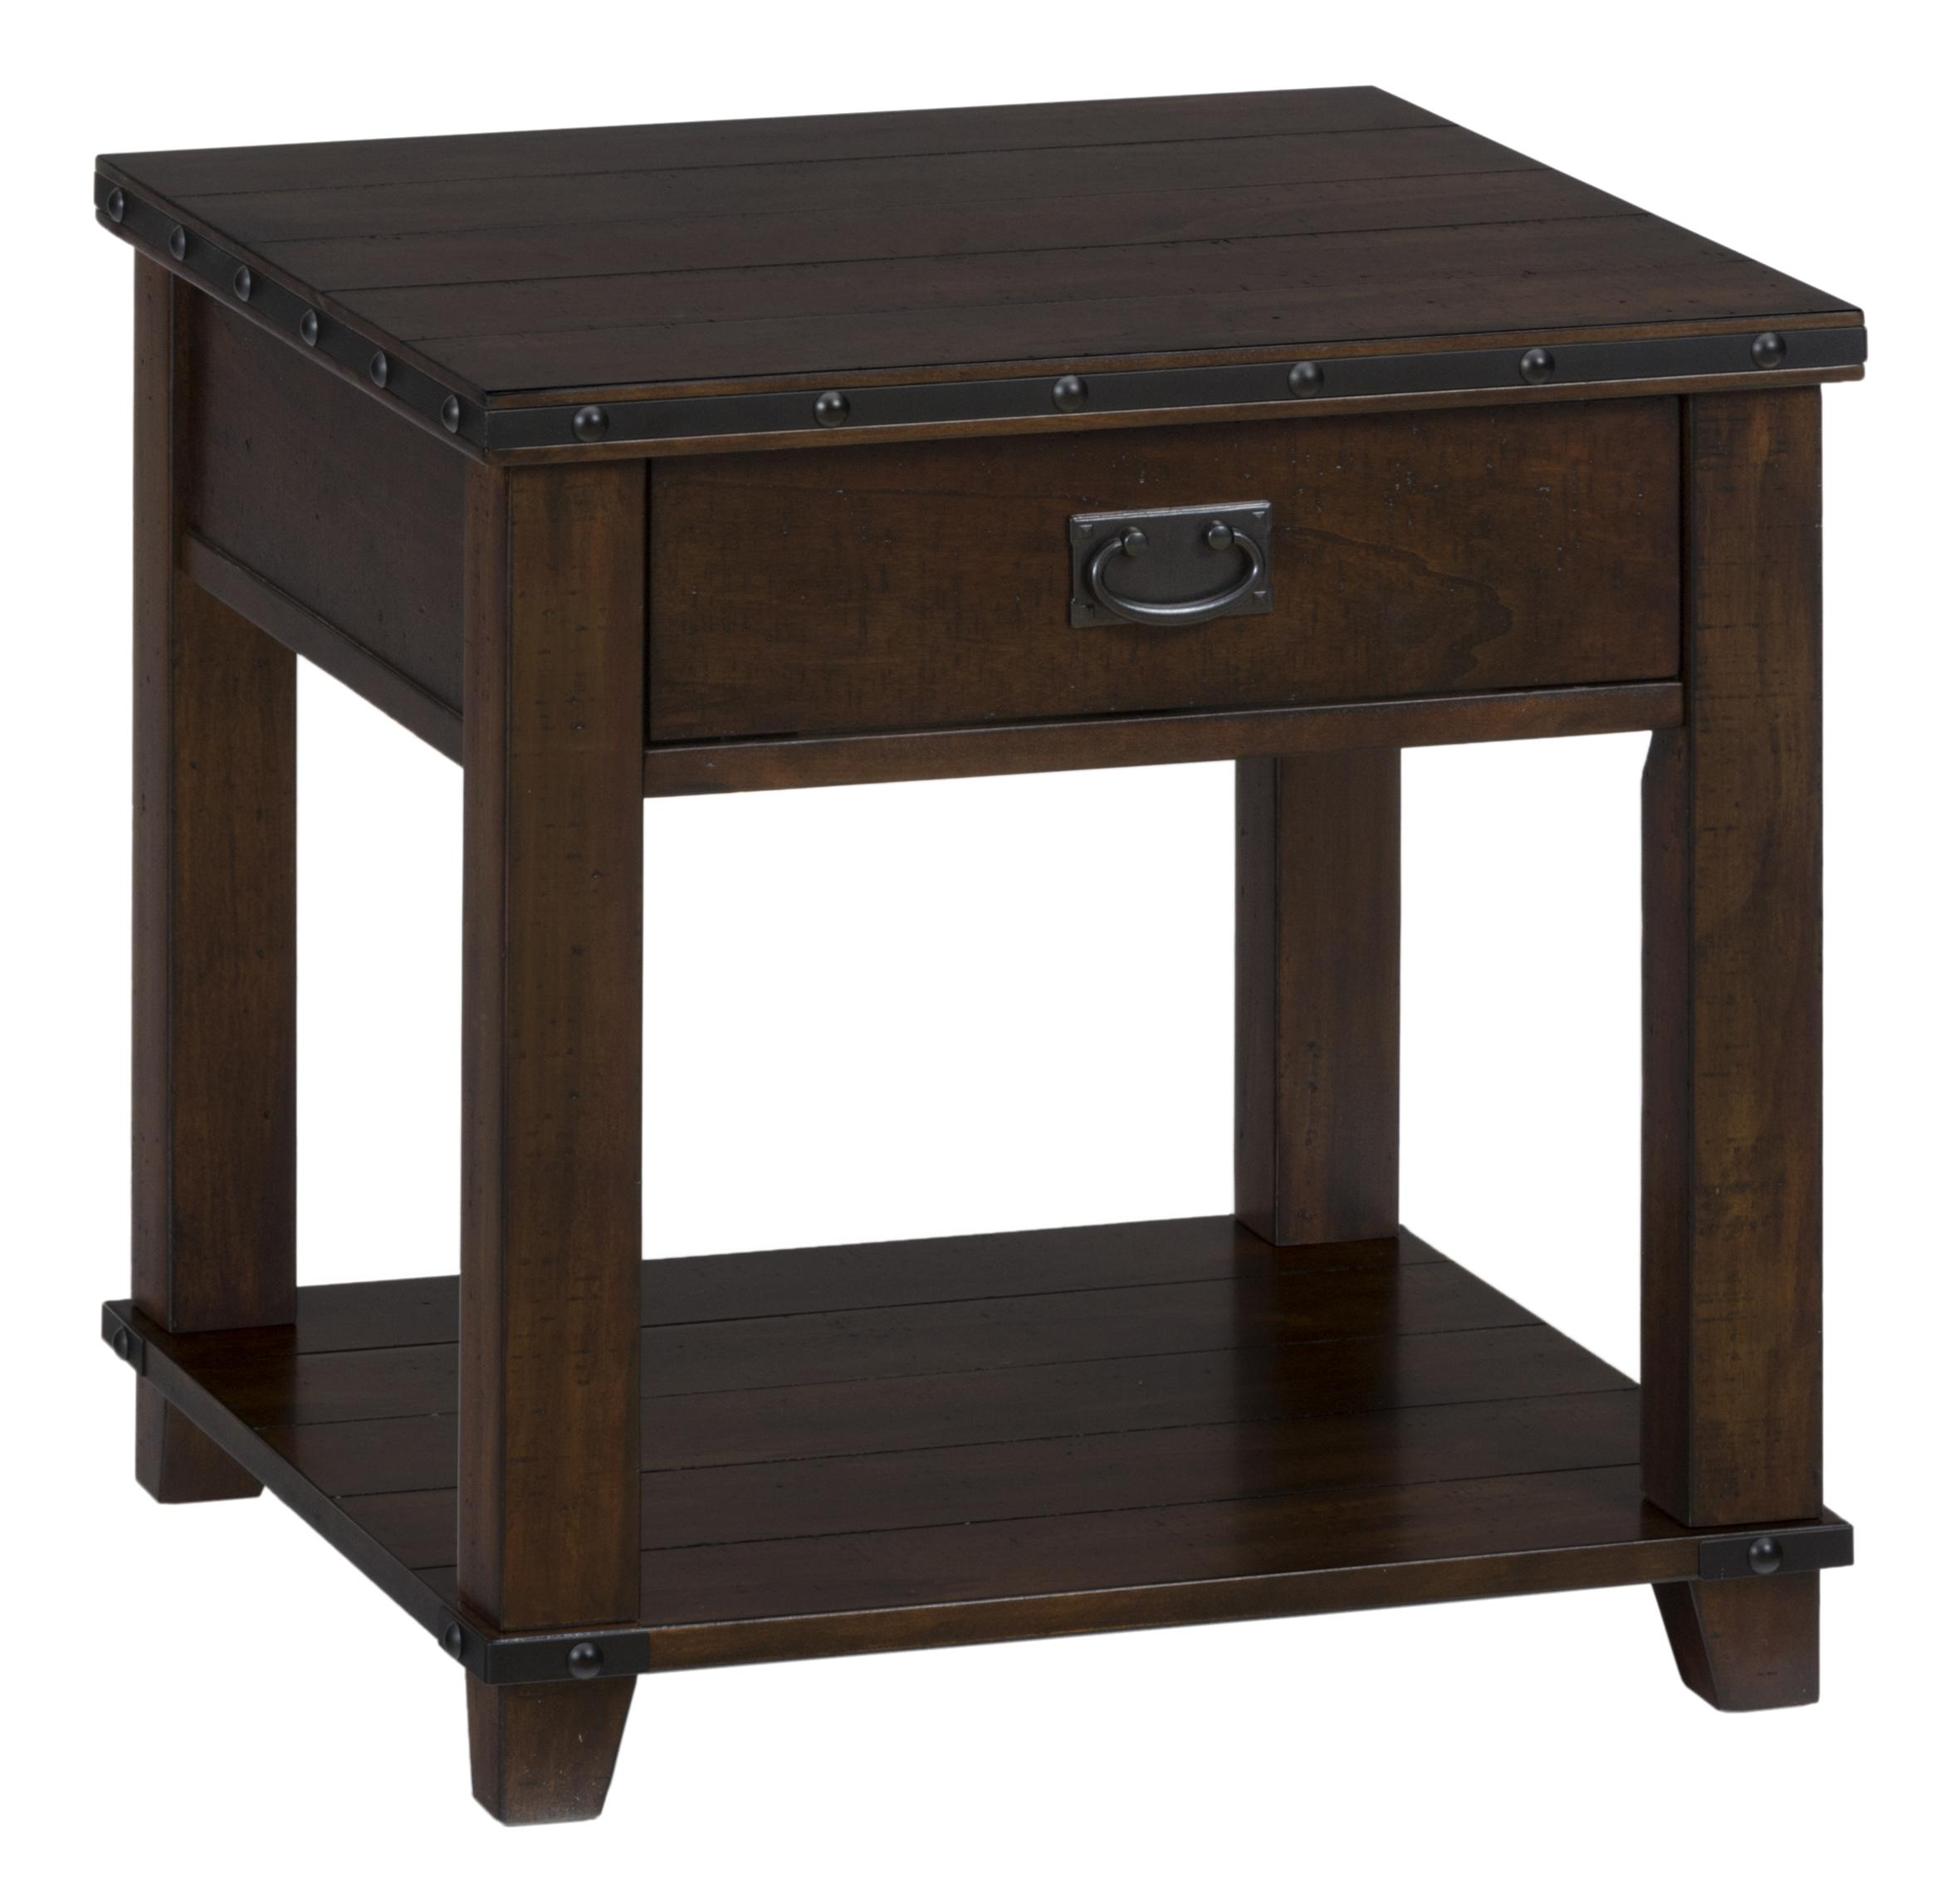 Jofran Cassidy Brown 561 3 Traditional Plank Top End Table